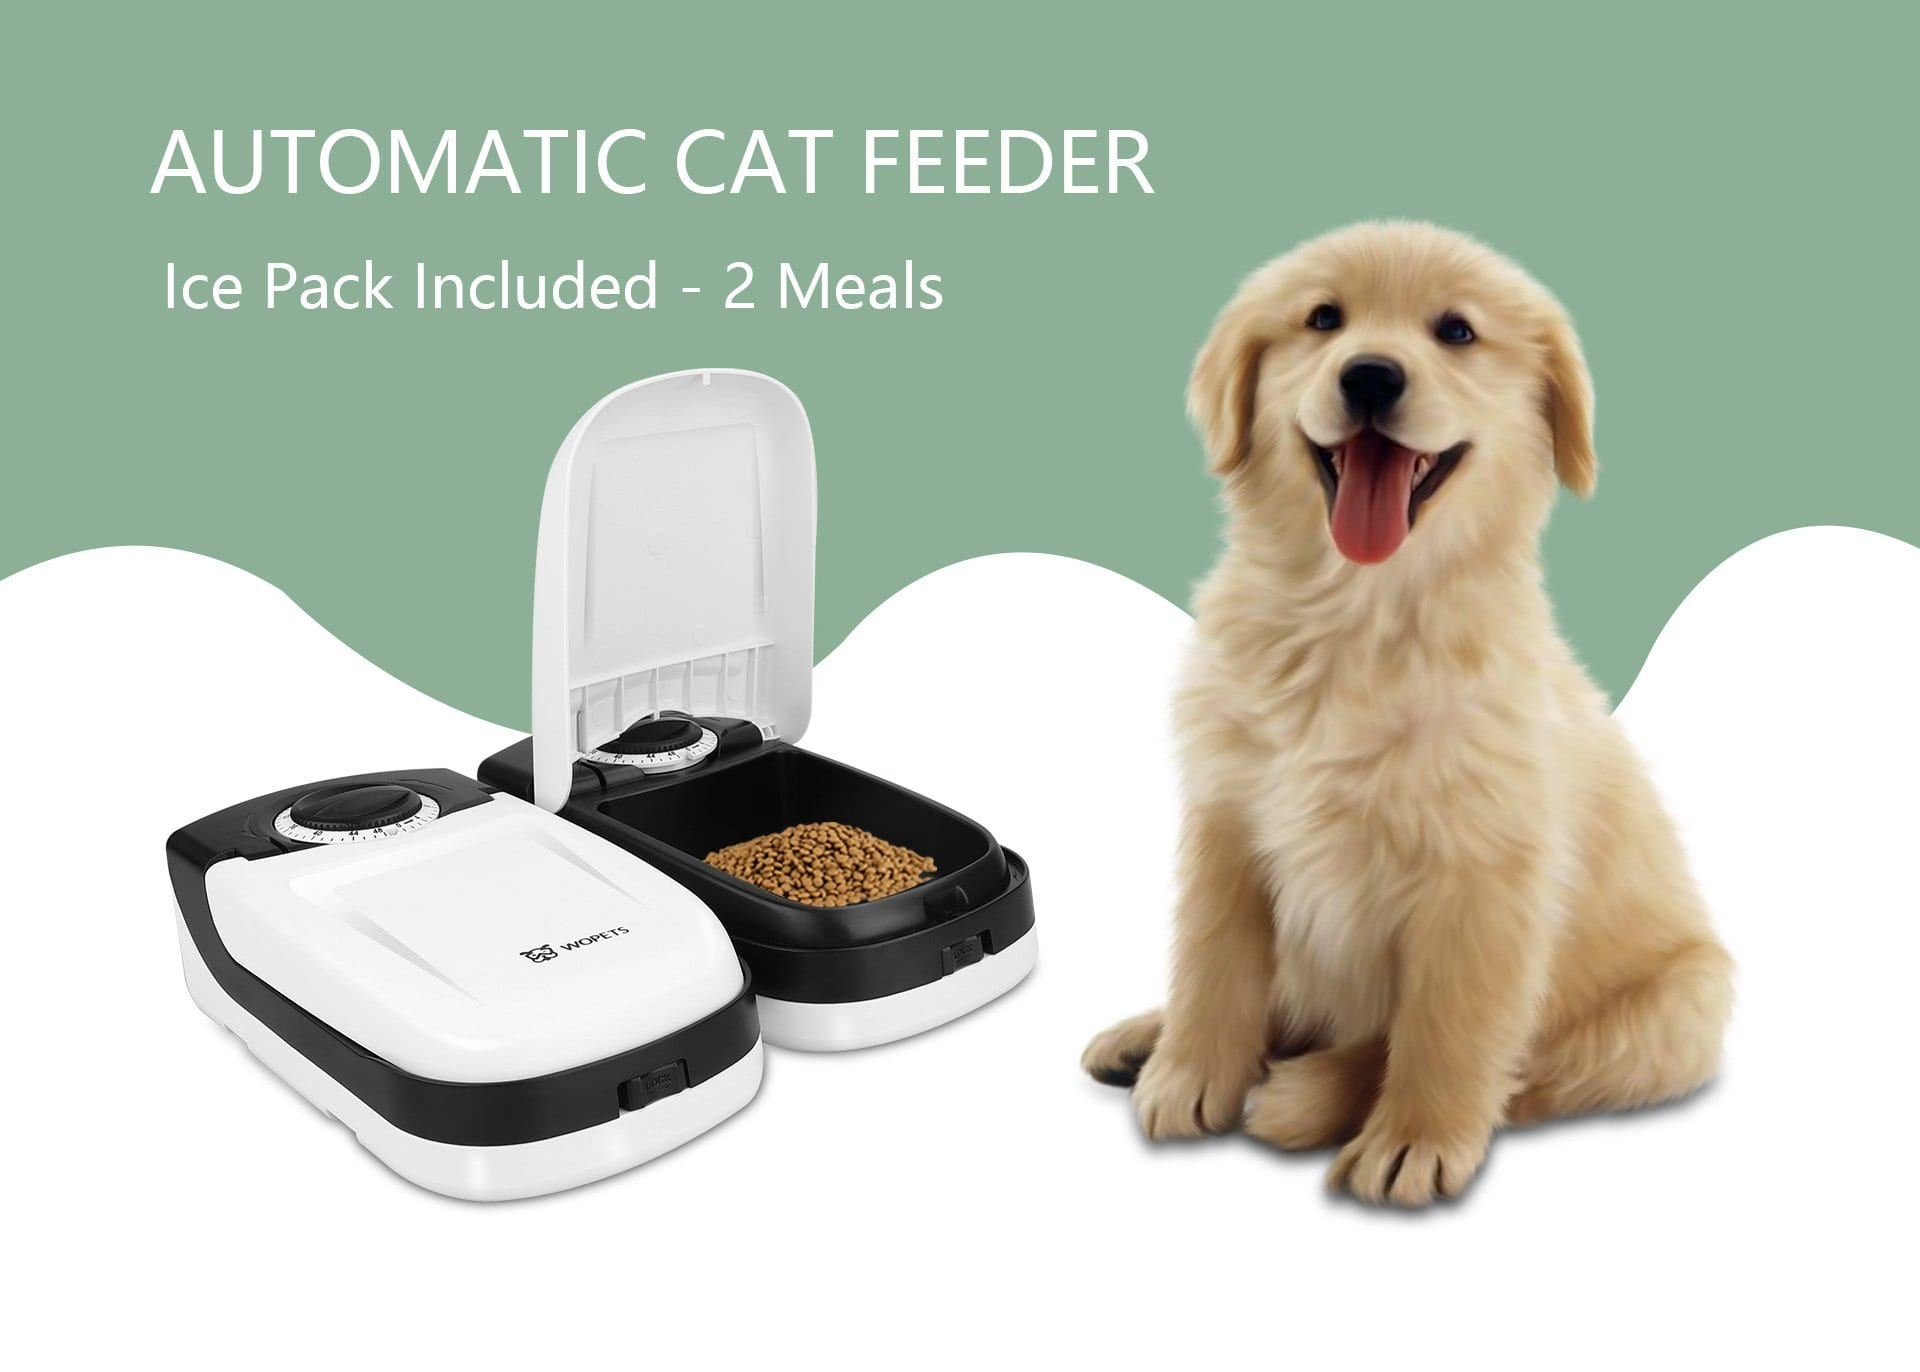 """WOpet Automatic Cat Feeder, Pet Feeder for Dogs and Cats with Ice Pack Included - 2 Meals with code """"WOPET30"""" $20.99"""